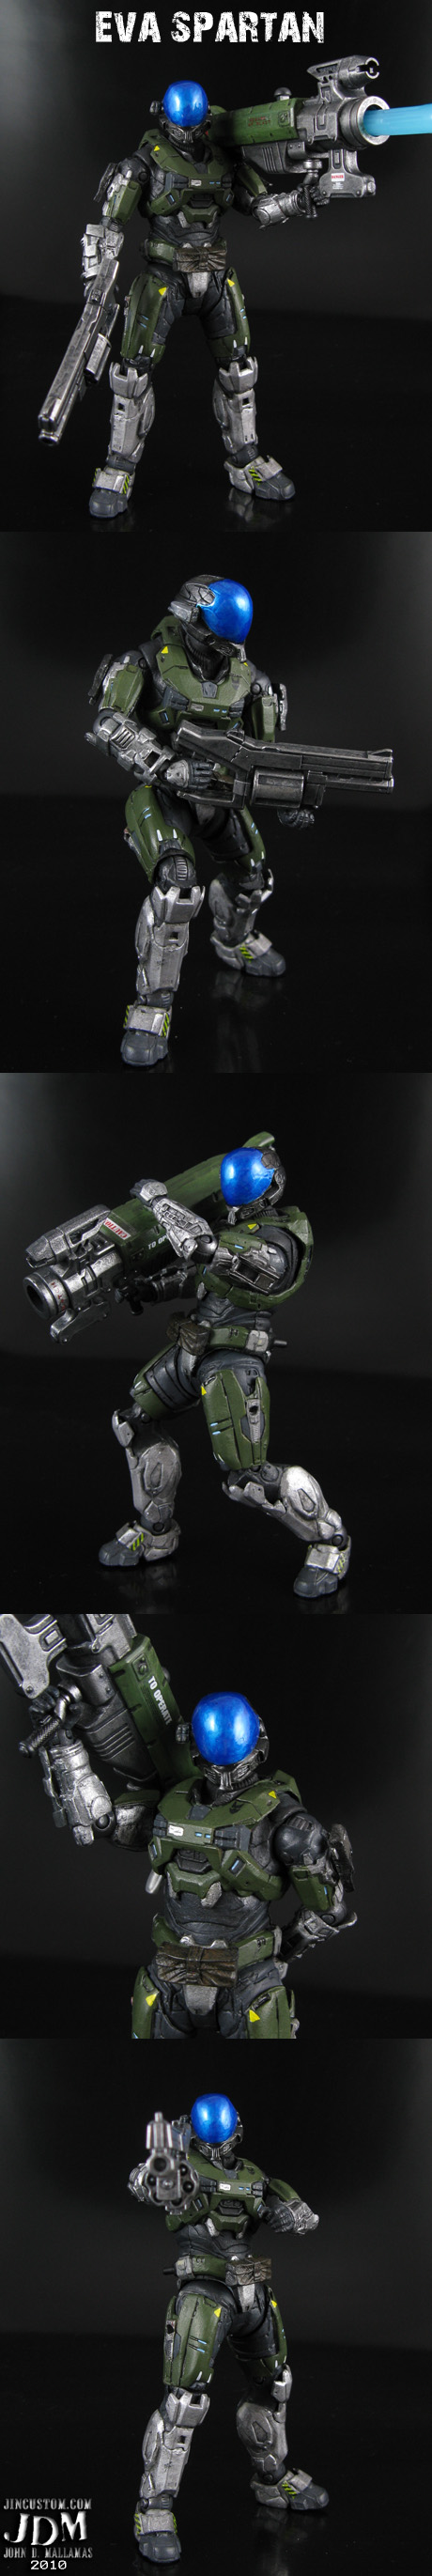 Halo Reach EVA